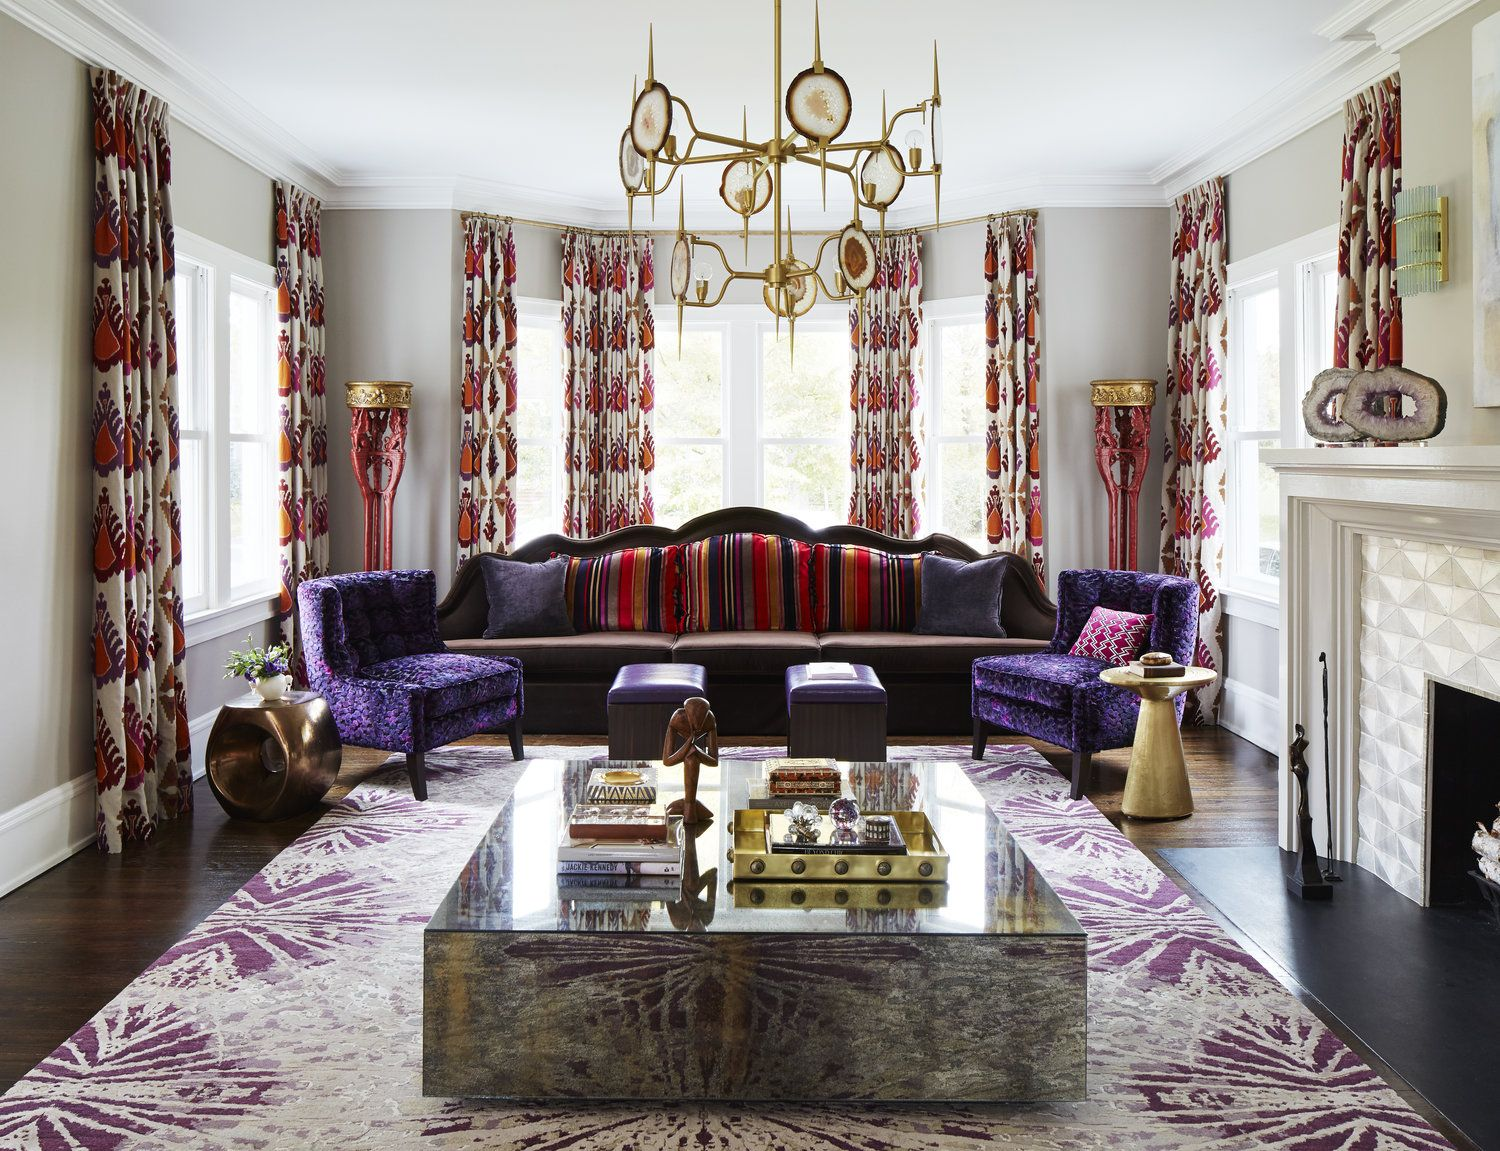 Julia Buckingham Modern Meets Antique With Images Interior